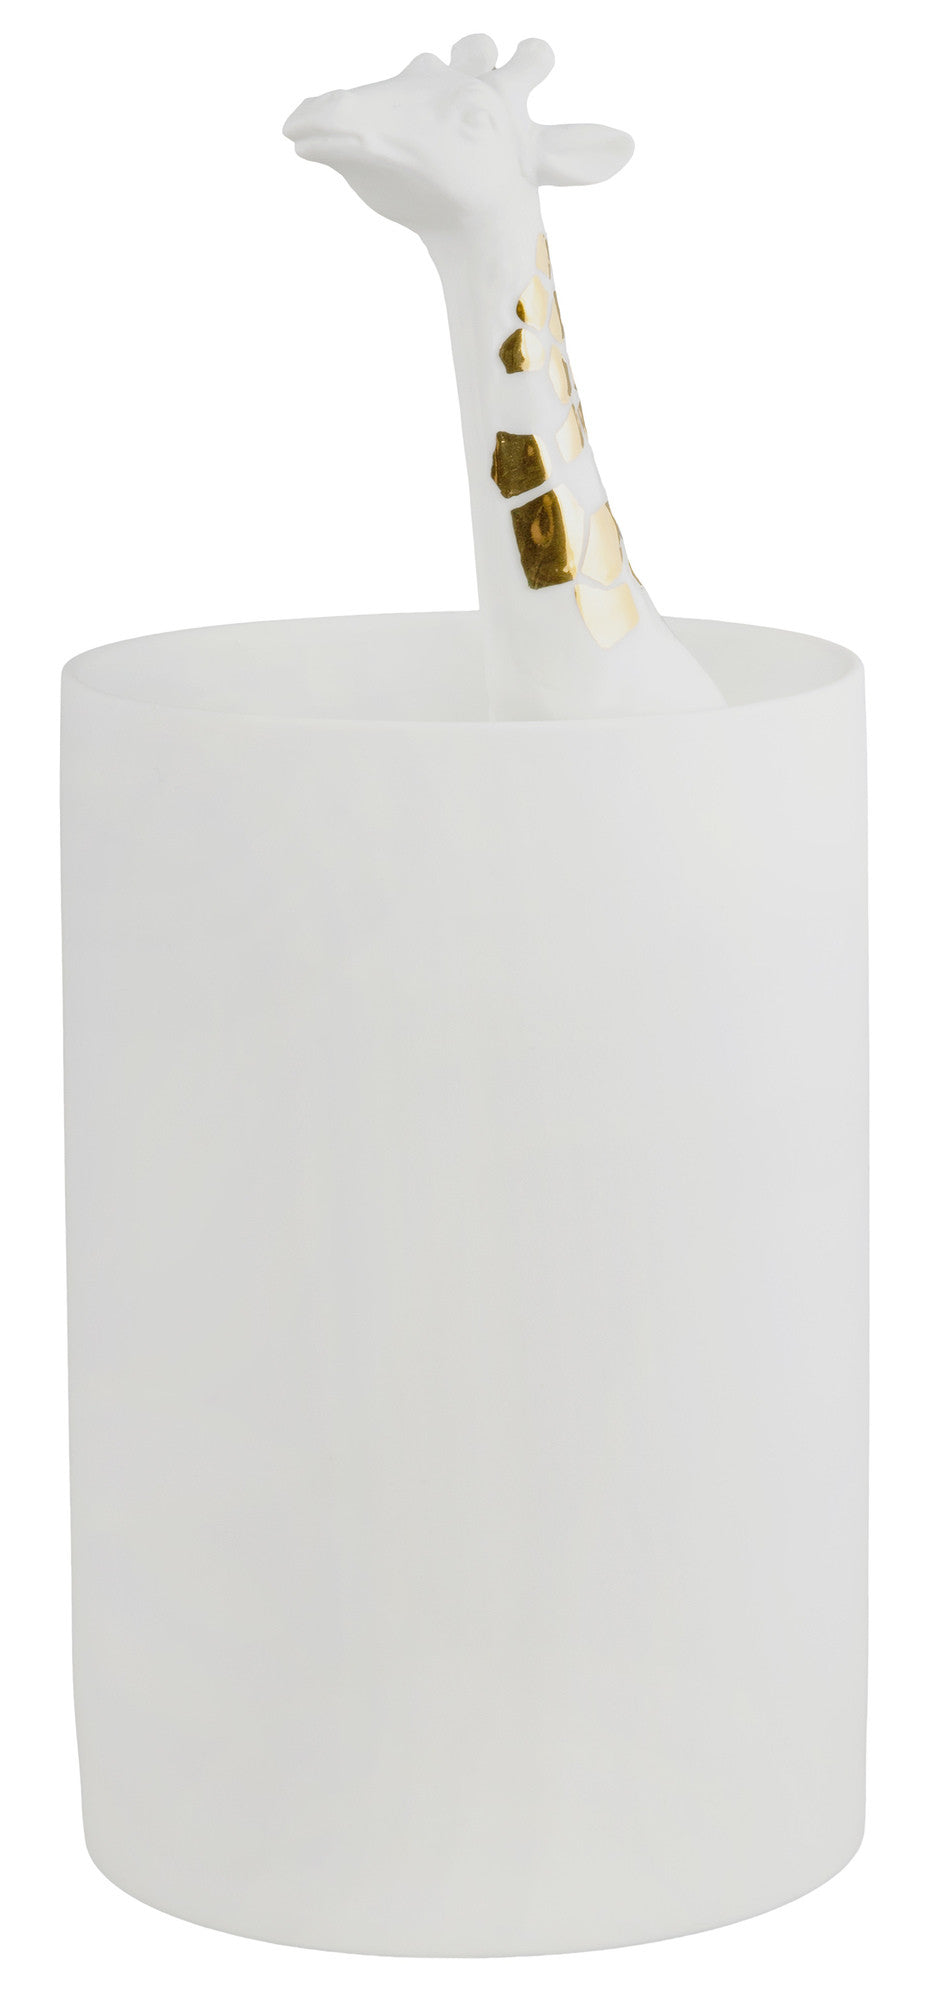 White Giraffe Vase by Rader